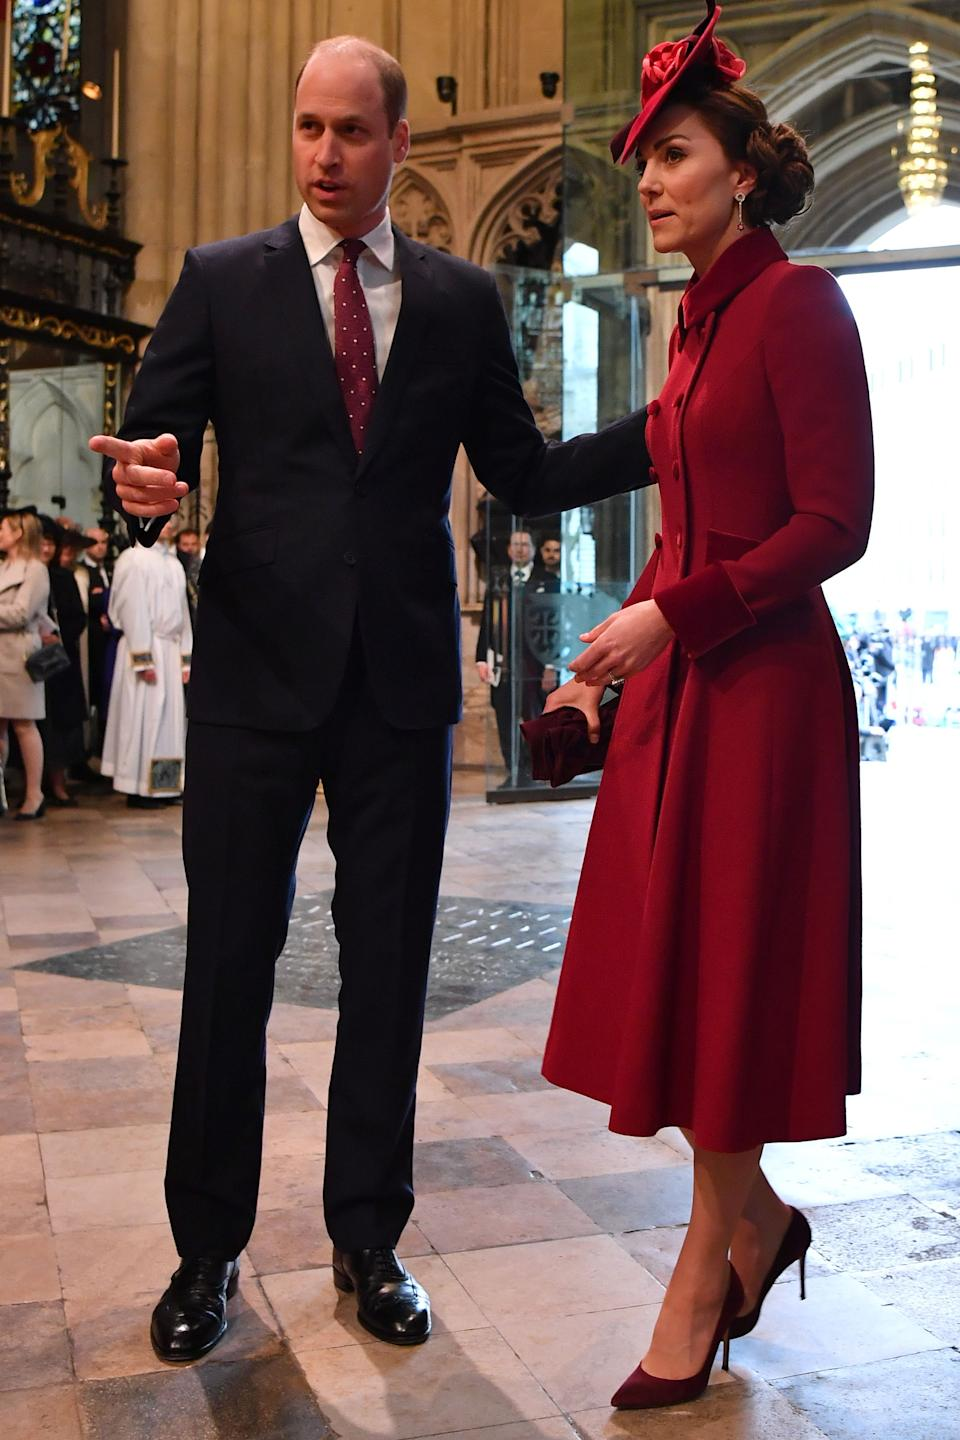 Britain's Prince William (L), Duke of Cambridge and Britain's Catherine, Duchess of Cambridge attend the annual Commonwealth Service at Westminster Abbey in London on March 09, 2020. - Britain's Queen Elizabeth II has been the Head of the Commonwealth throughout her reign. Organised by the Royal Commonwealth Society, the Service is the largest annual inter-faith gathering in the United Kingdom. (Photo by Ben STANSALL / POOL / AFP) (Photo by BEN STANSALL/POOL/AFP via Getty Images)